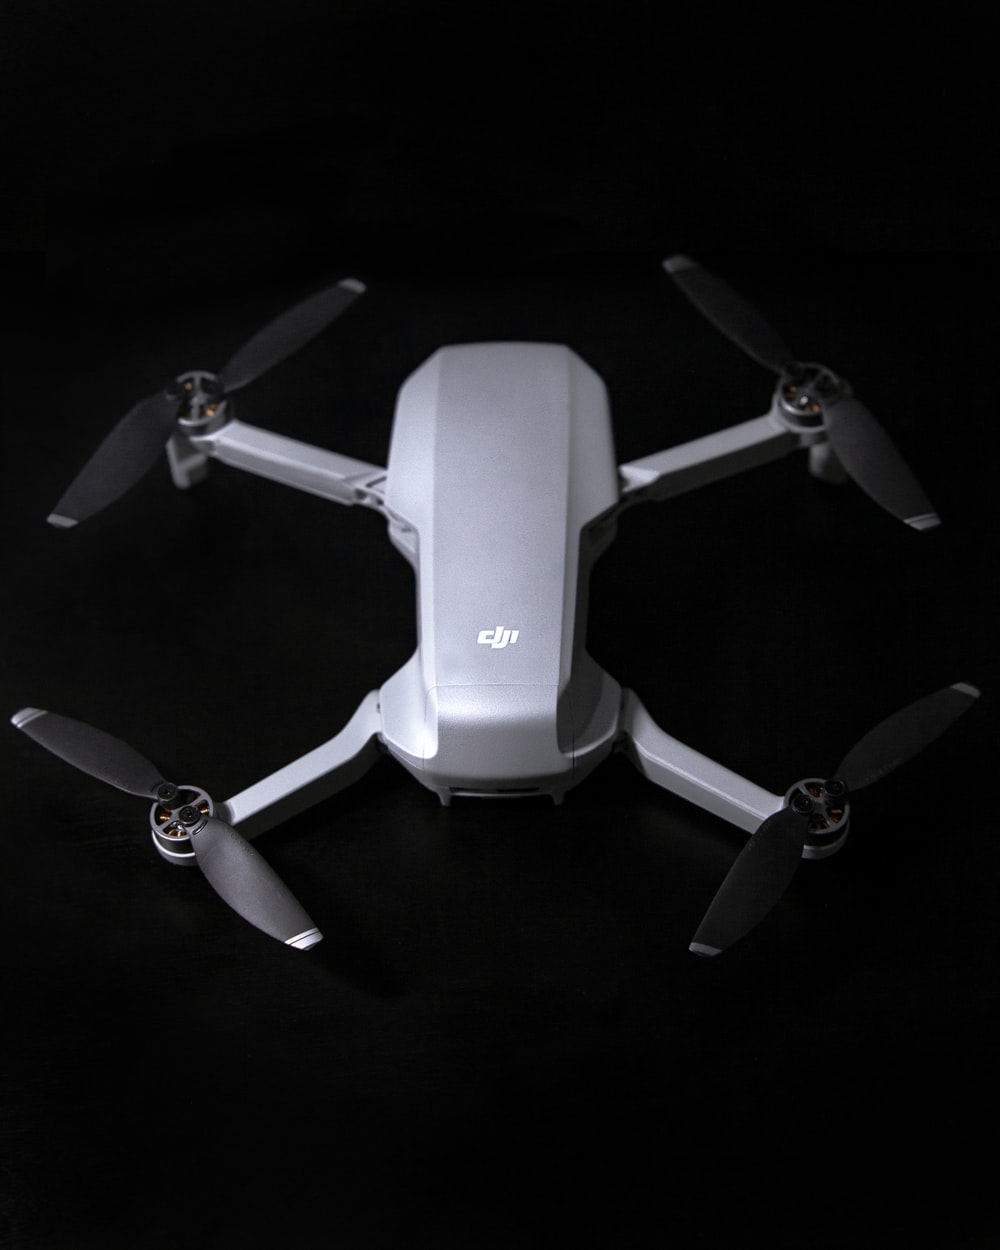 white and gray quadcopter drone